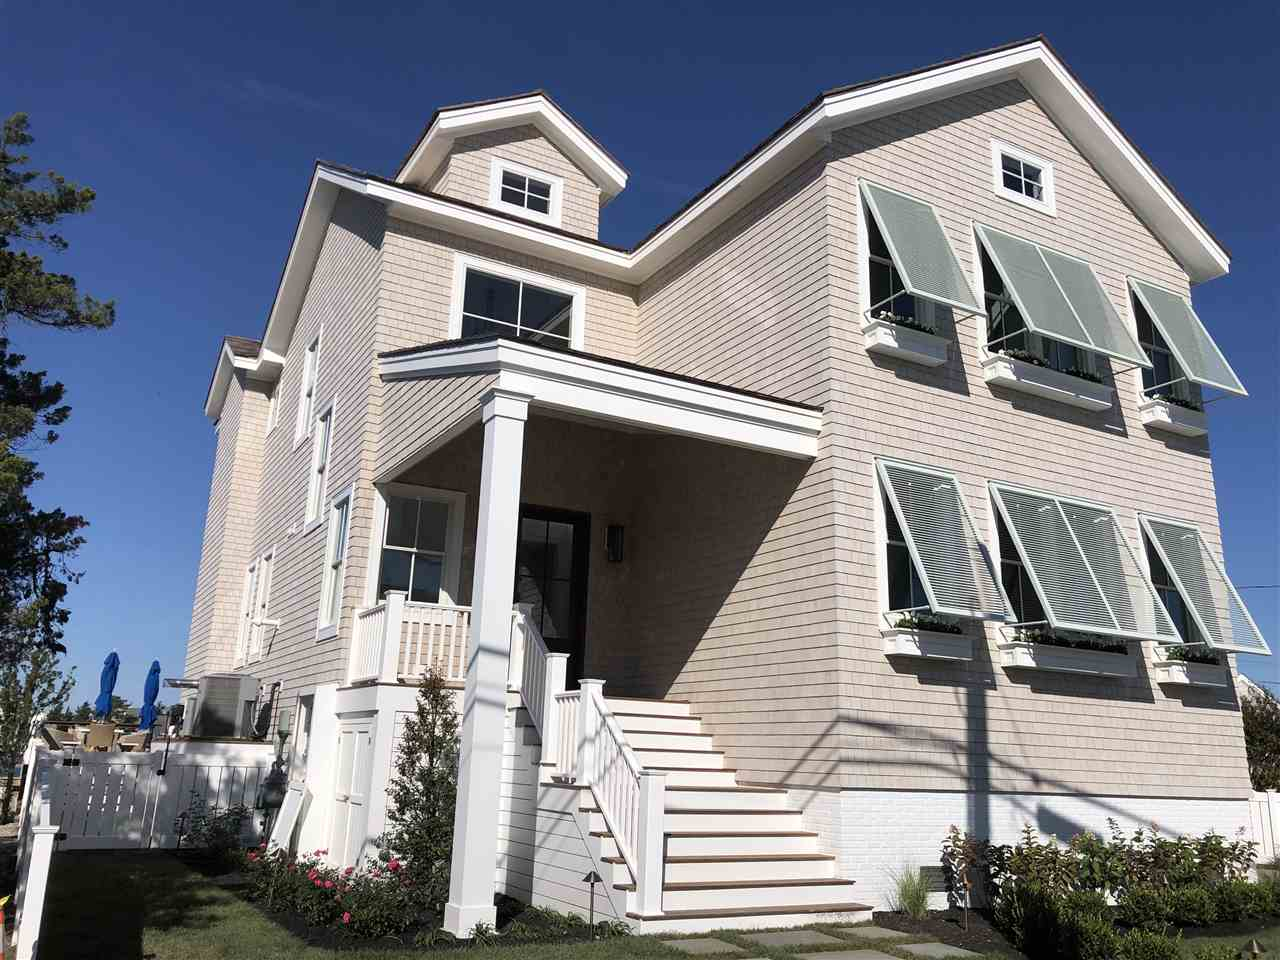 10403 Third Ave, Stone Harbor